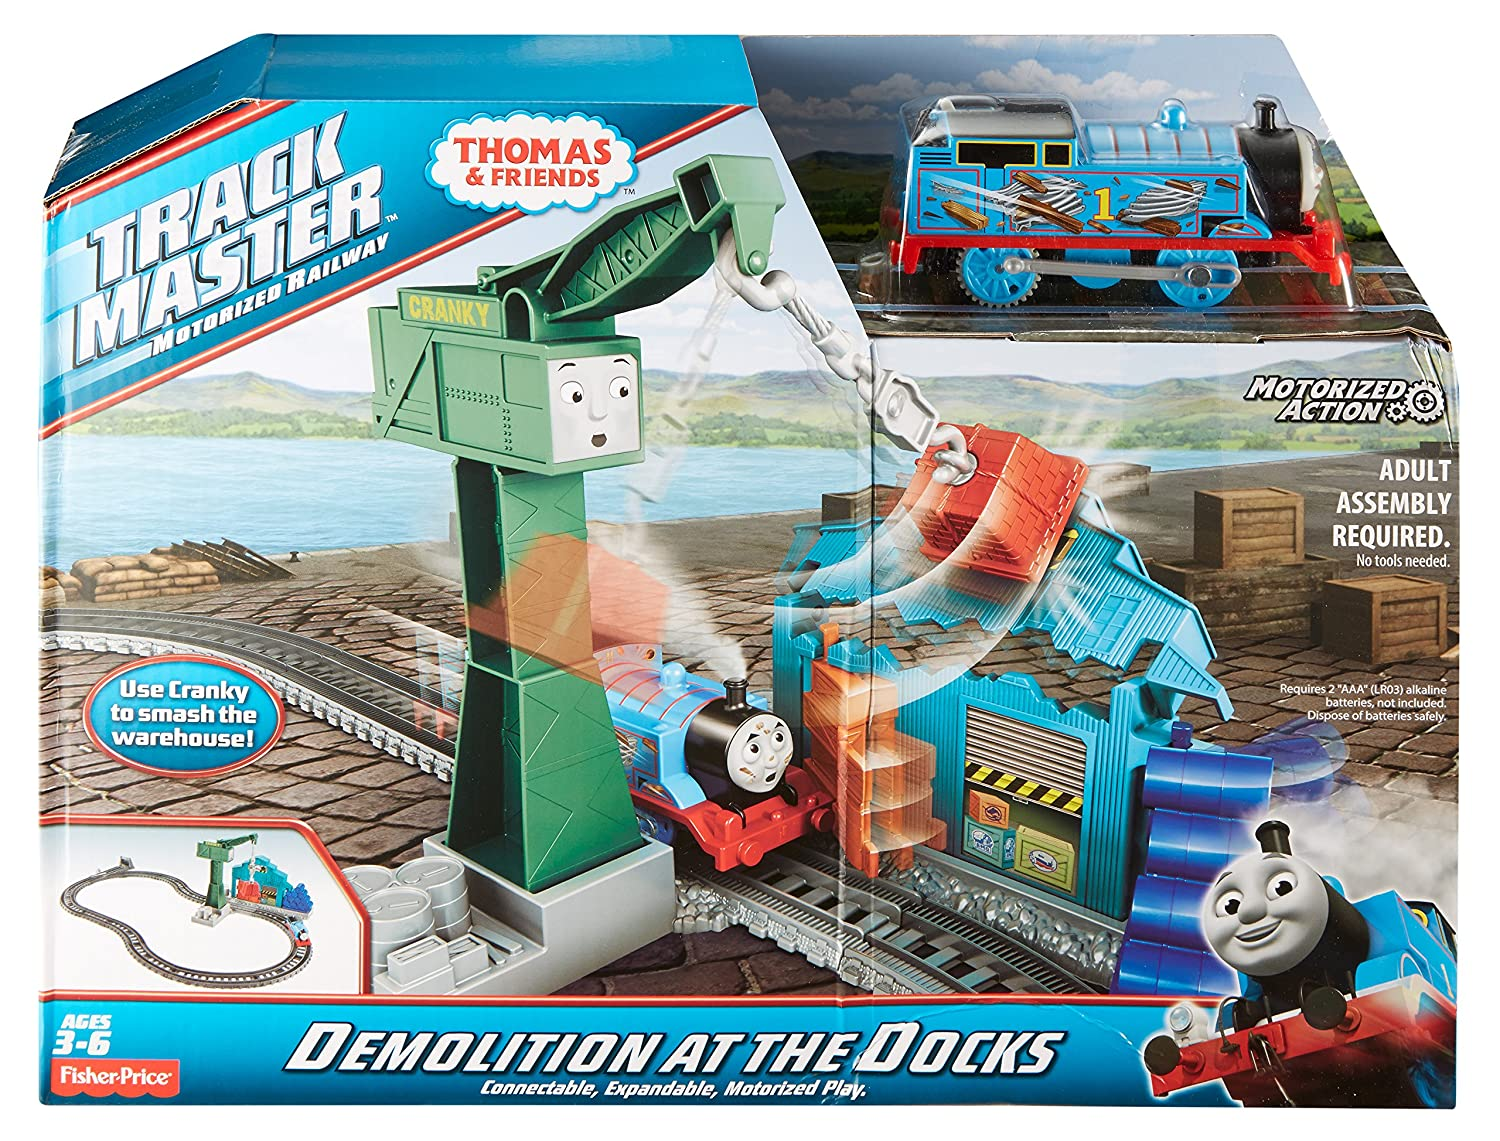 Fisher price thomas amp friends trackmaster treasure chase set new - Amazon Com Fisher Price Thomas Friends Trackmaster Demolition At The Docks Set Toys Games